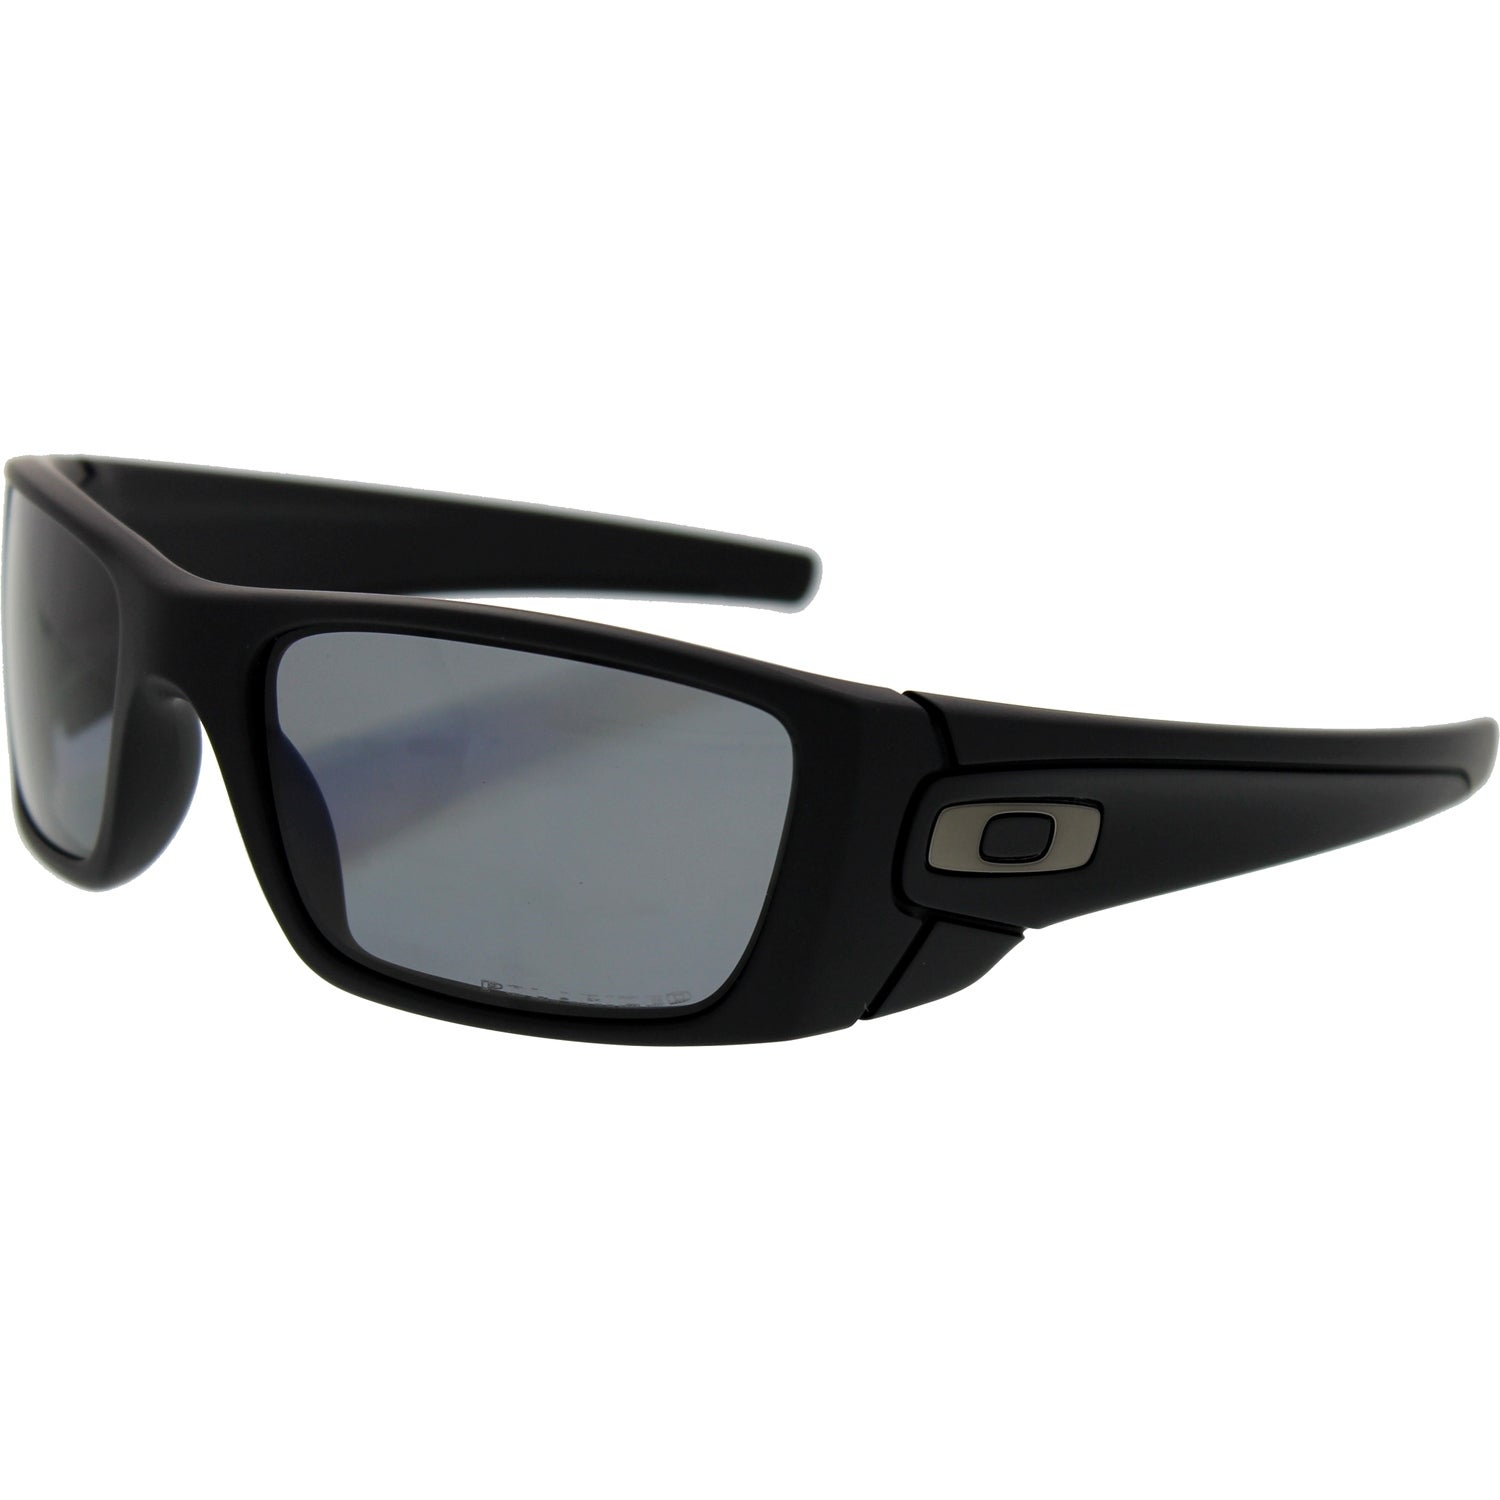 Sunglasses | Shop our Best Clothing & Shoes Deals Online at Overstock.com